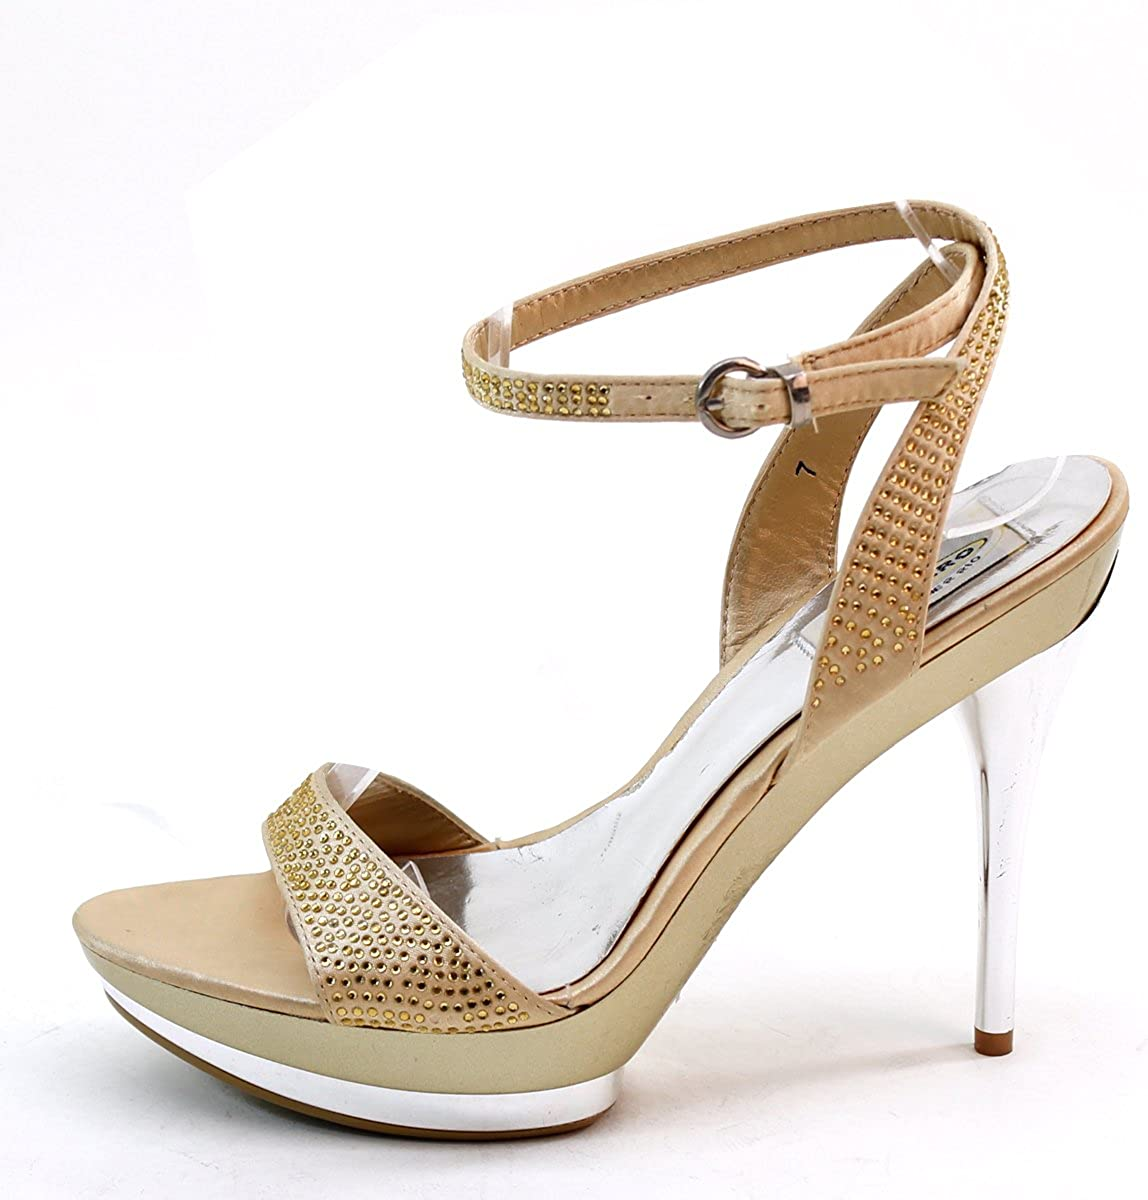 Brieten New Womens Bukle Rhinestone Ankle Strap Platform High Heel Sandals